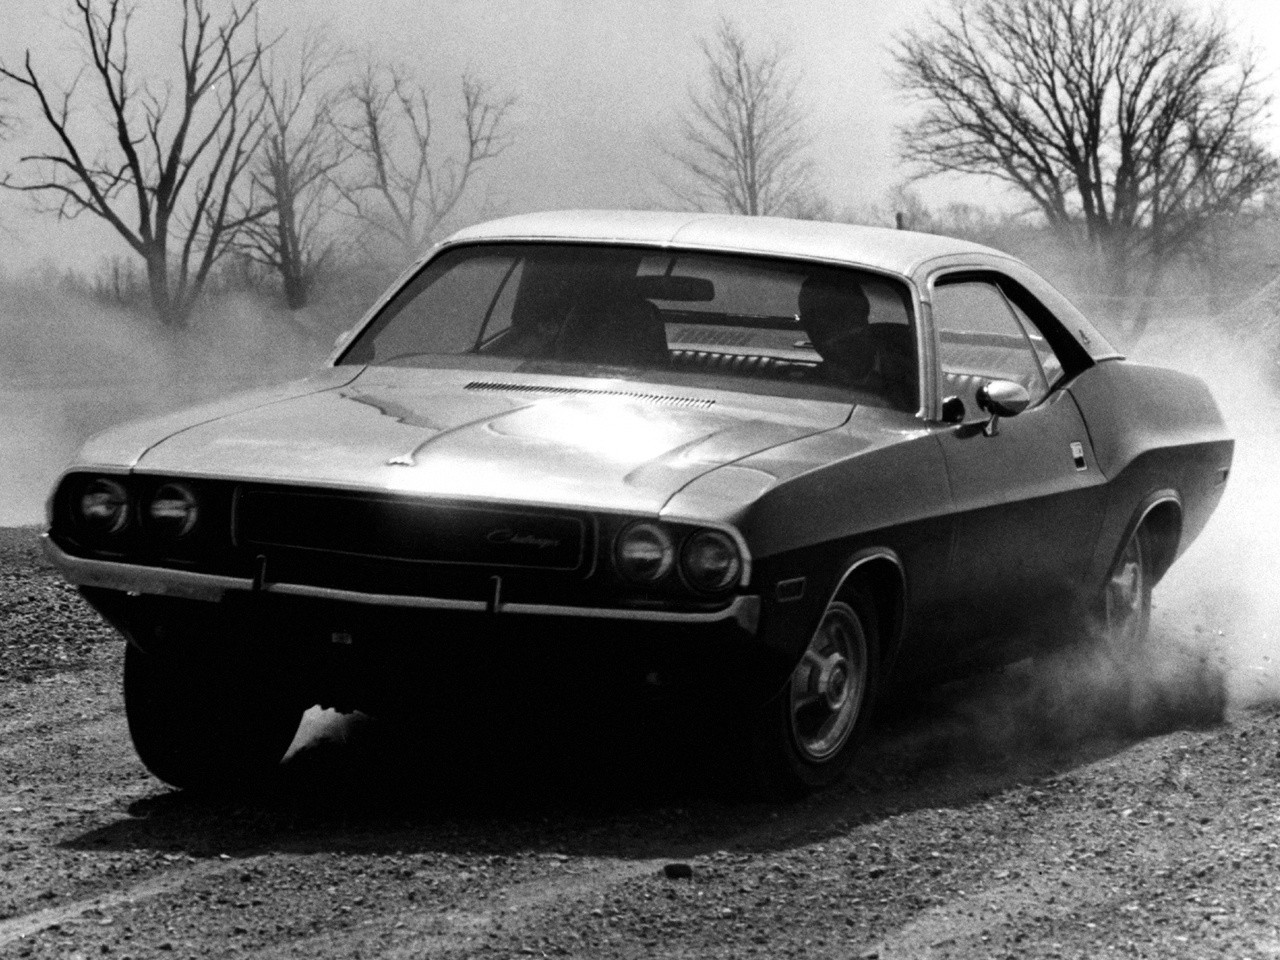 DODGE Challenger specs & photos - 1969, 1970, 1971, 1972, 1973, 1974 - autoevolution